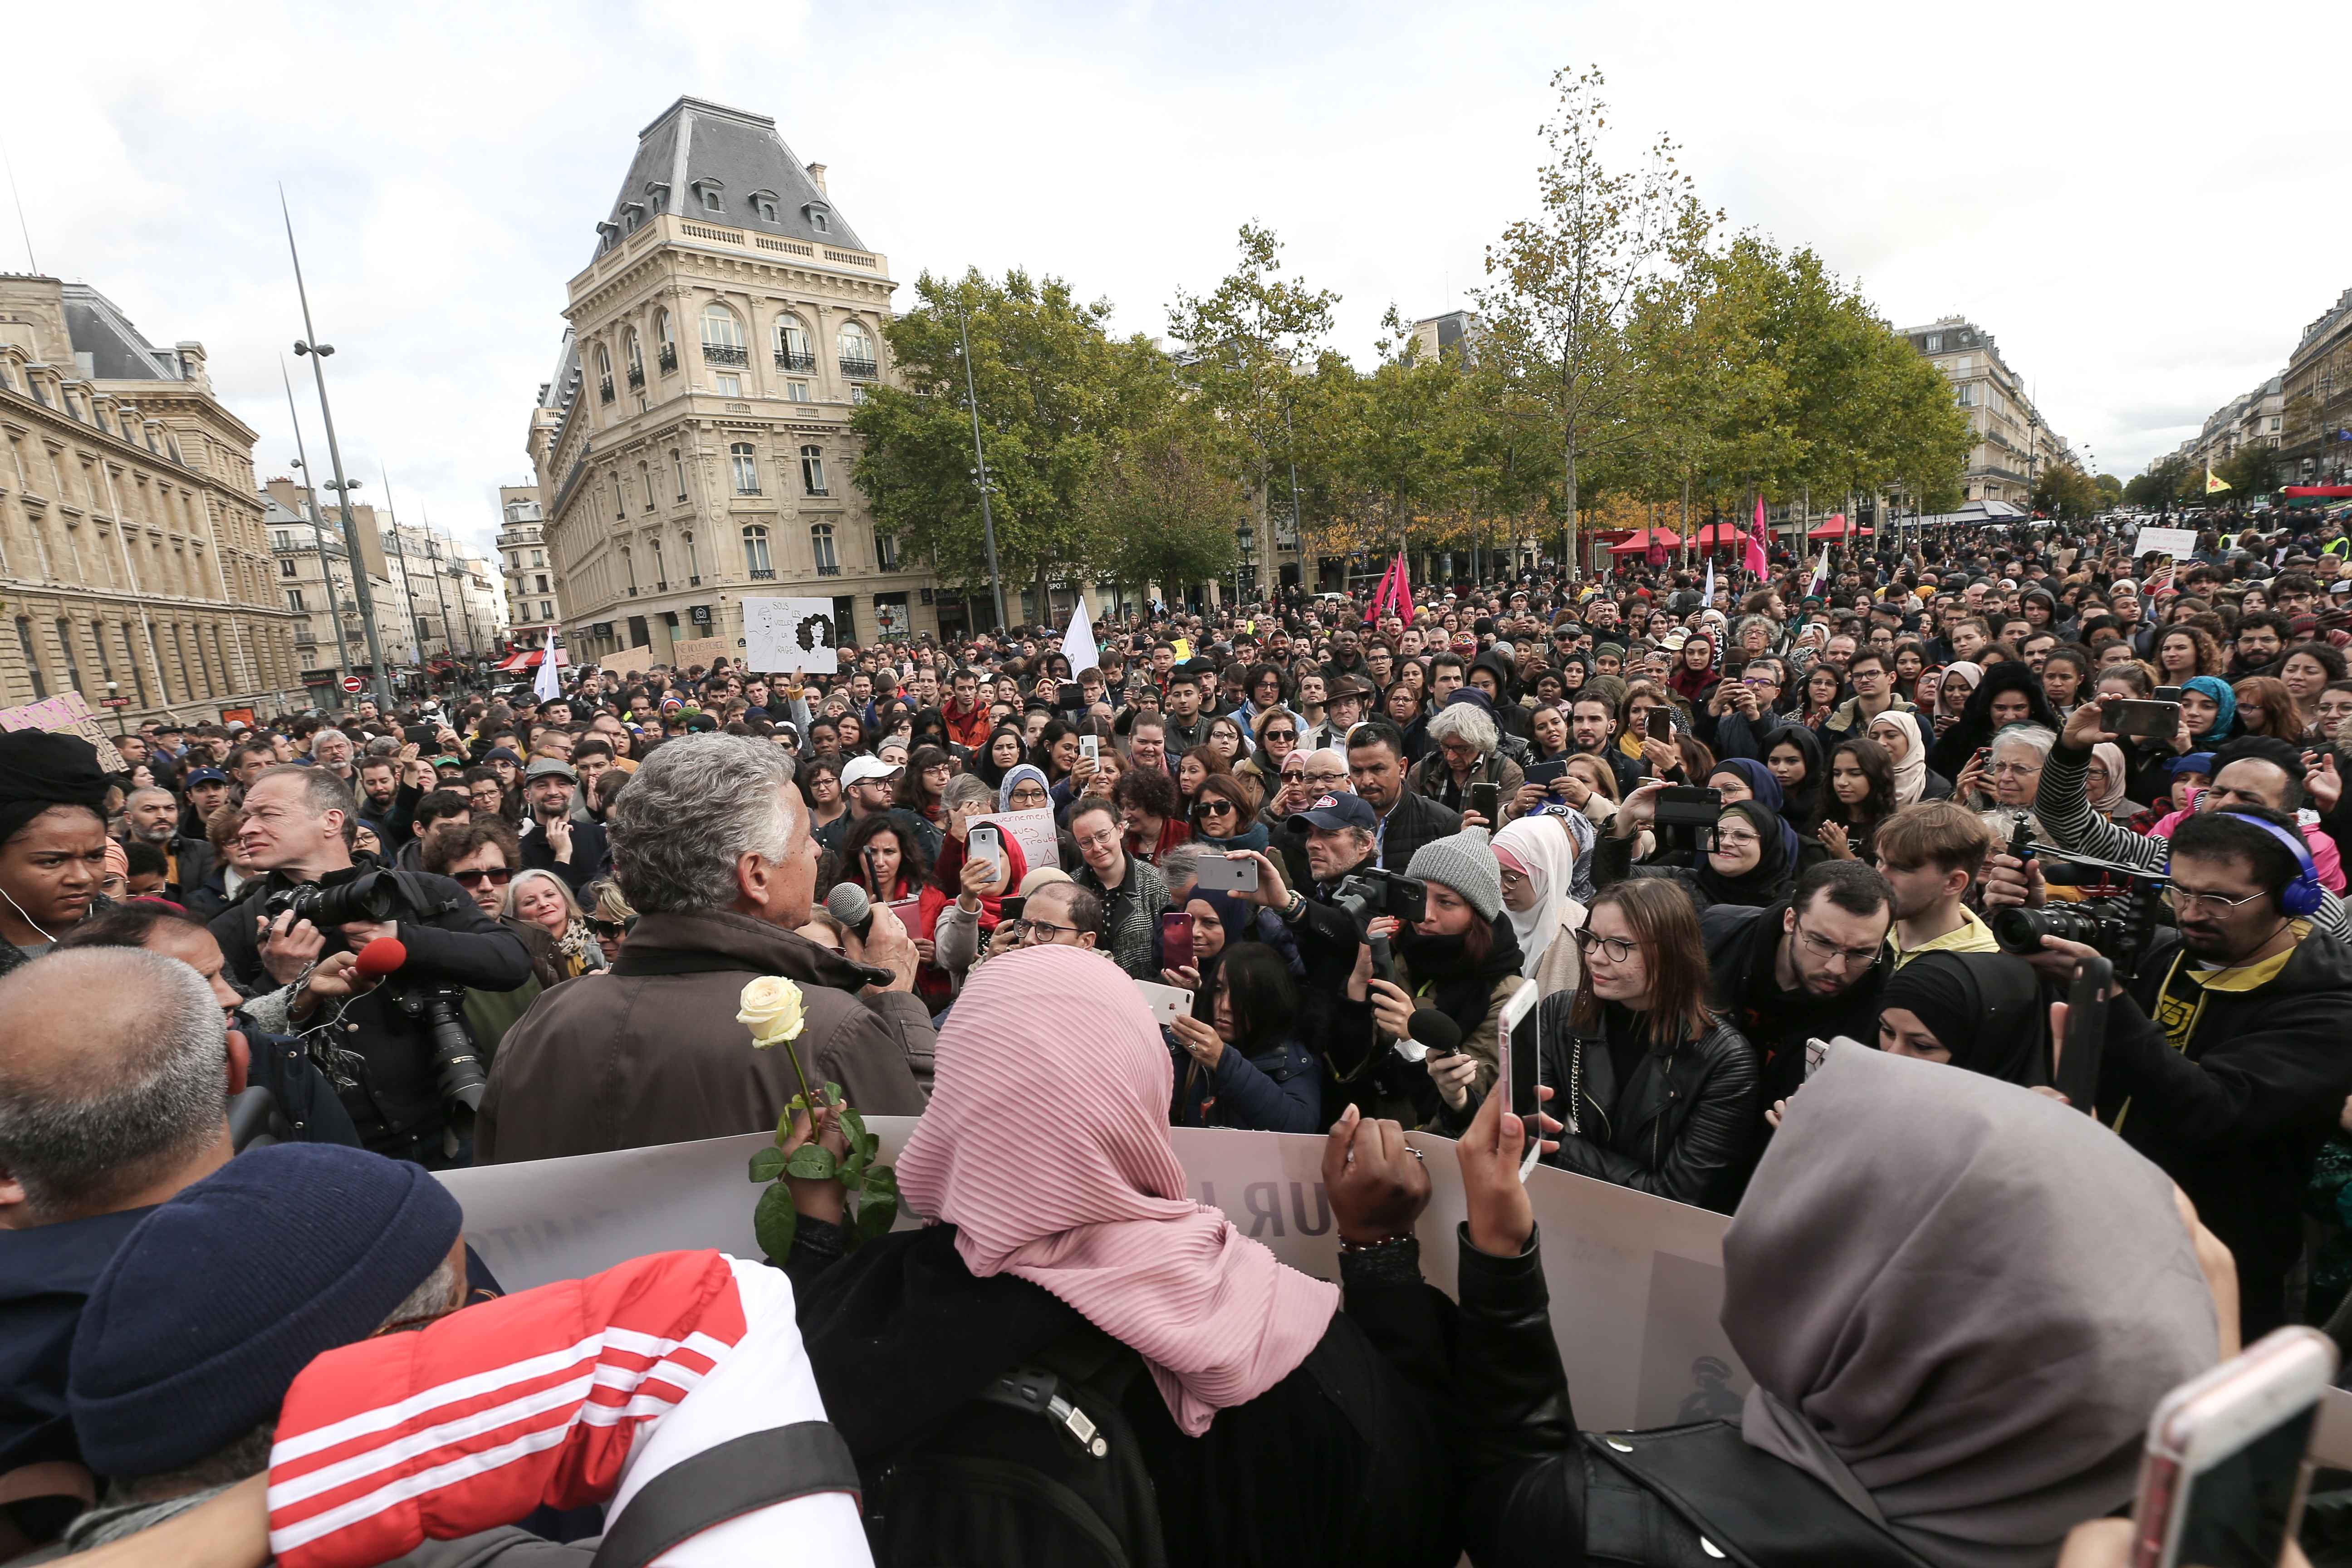 People demonstrate against Islamophobia on October 19, 2019 on the place de la Republique in Paris. A new row over secularism and the wearing of the Islamic hijab in public buildings has erupted in France after a far-right politician asked a woman accompan